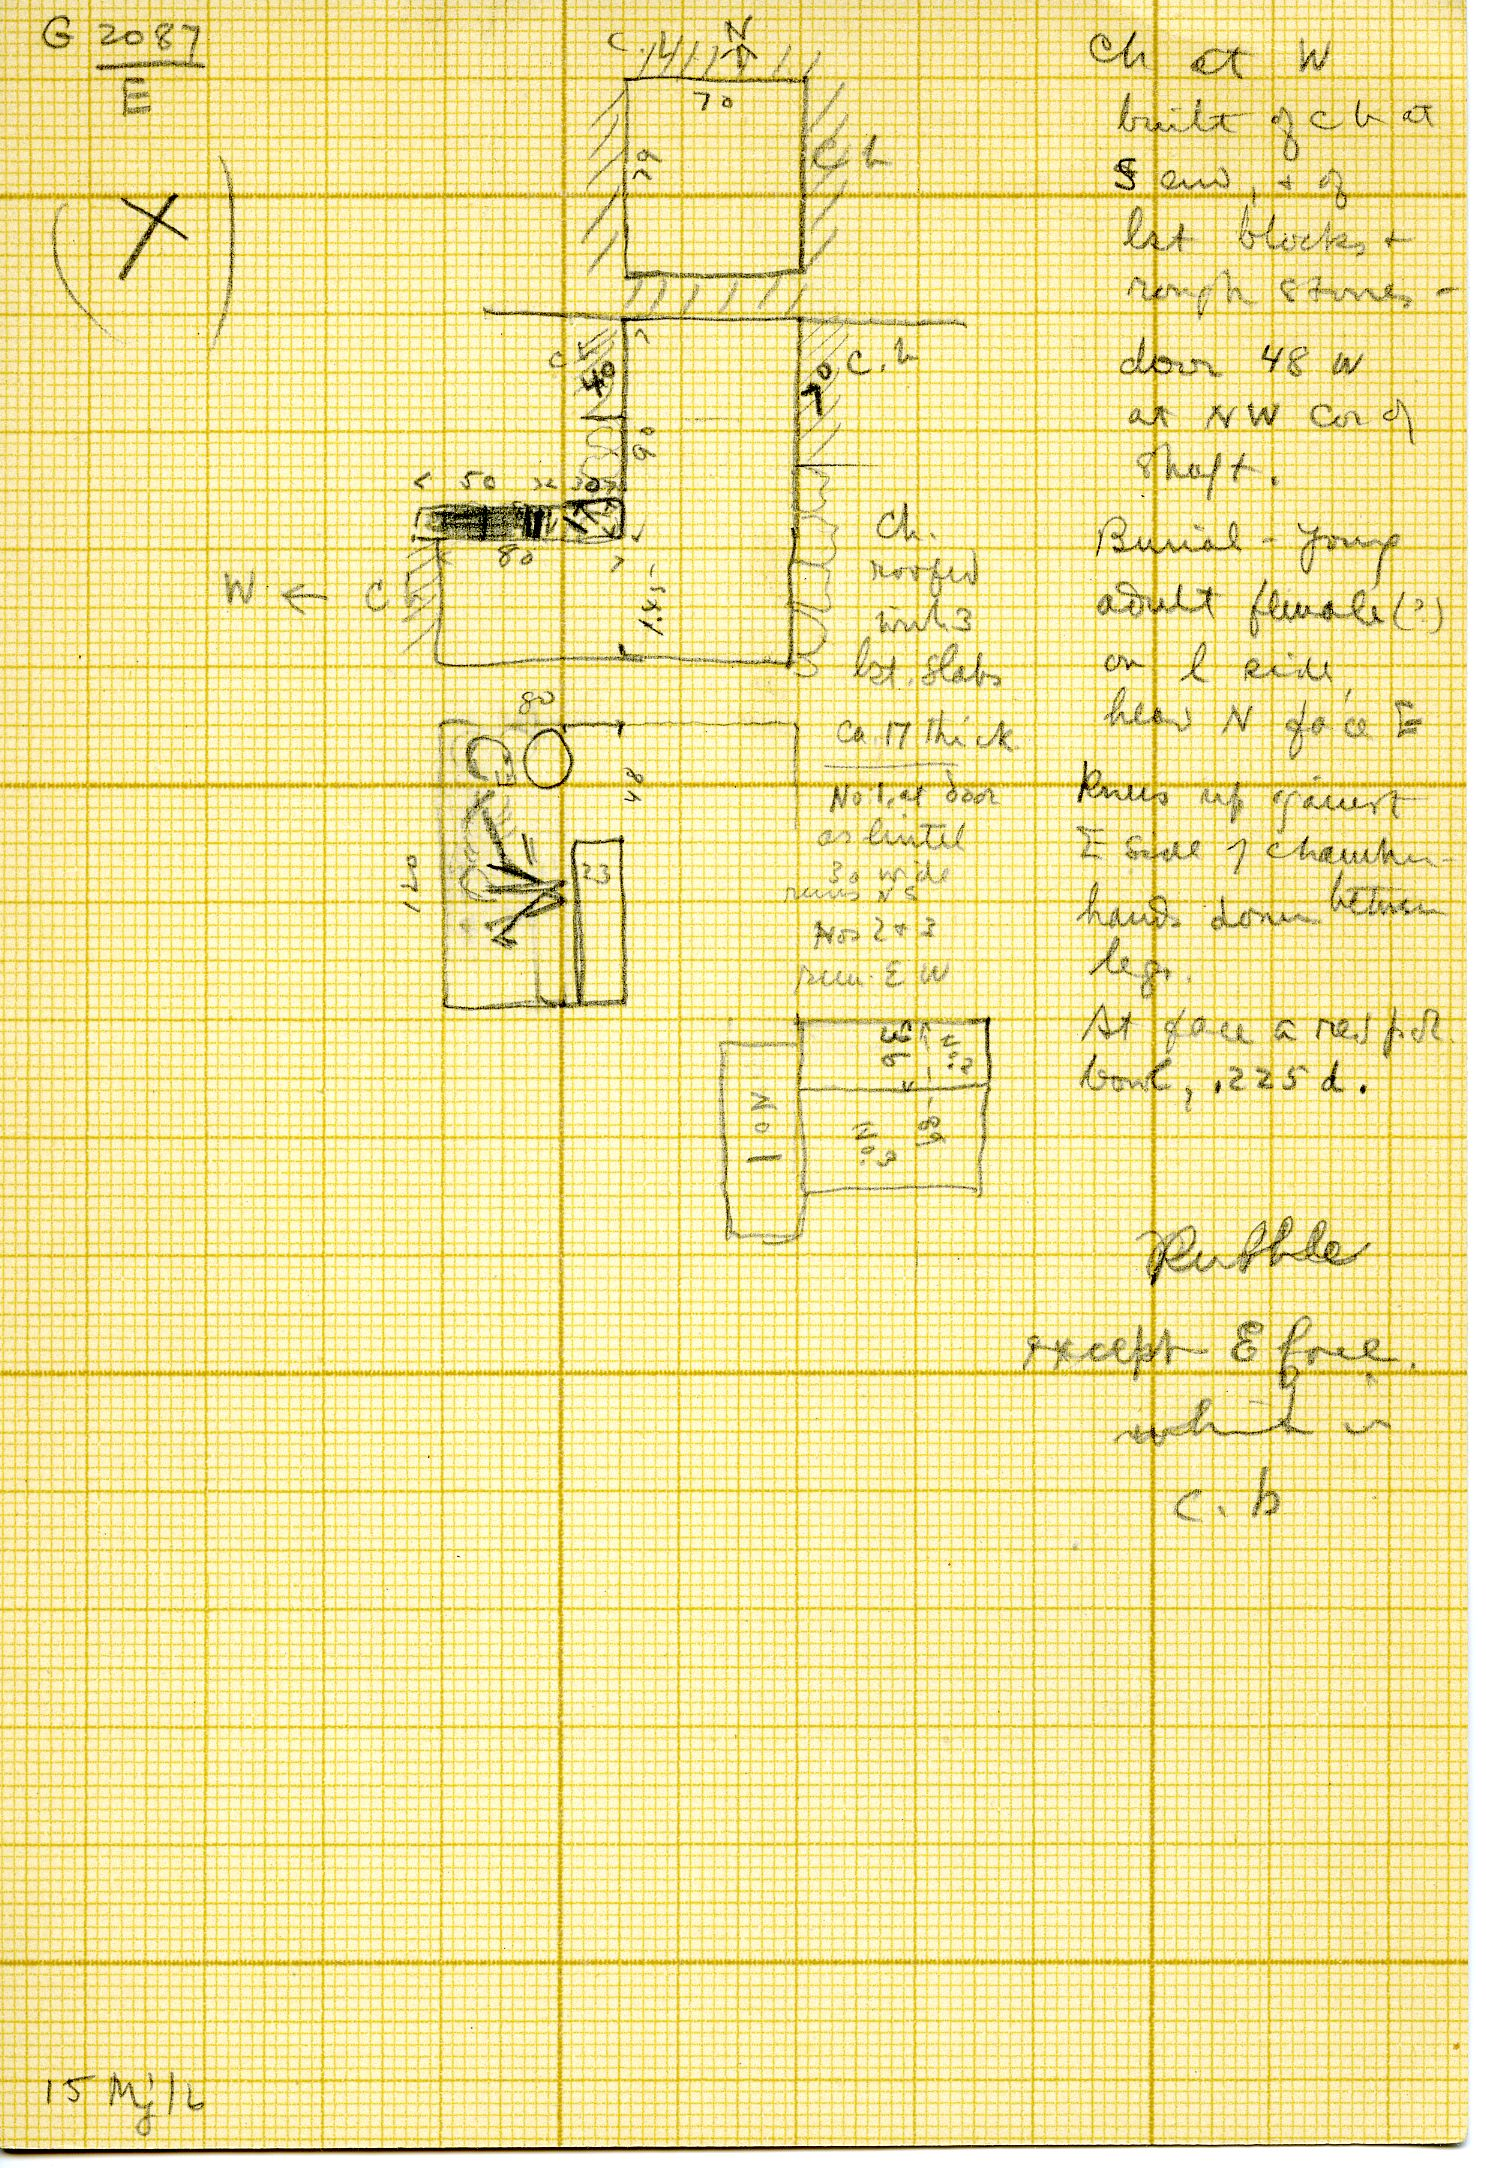 Maps and plans: G 3087, Shaft E